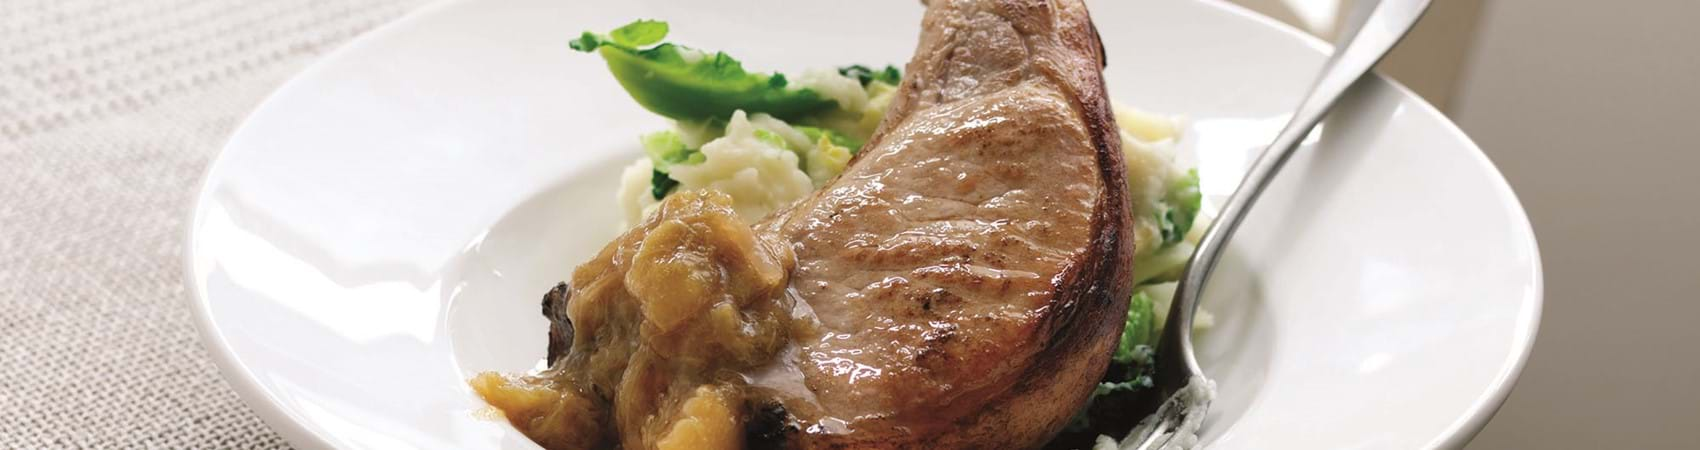 Pork Chops With Rhubarb, Apple And Ginger Chutney